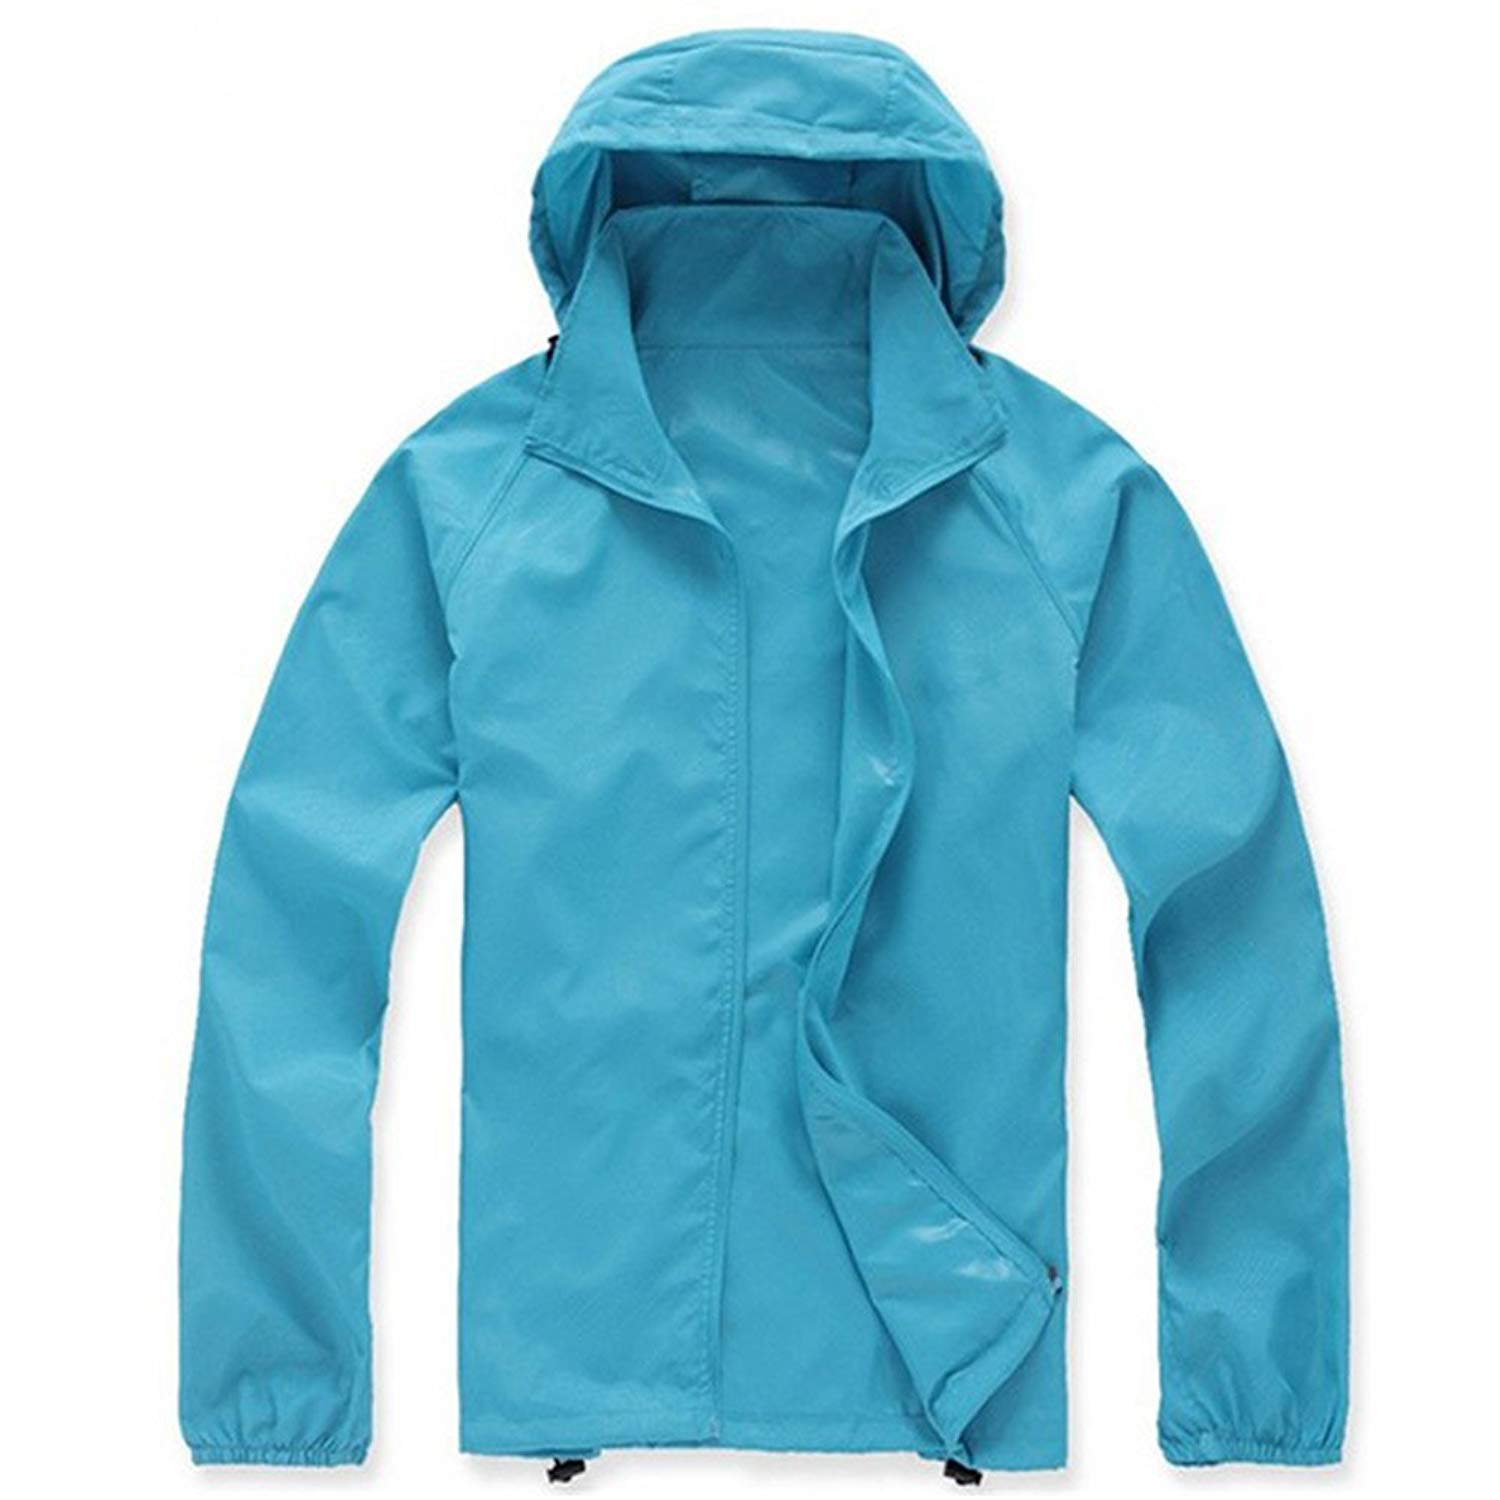 Coat Skin-Jackets Camping-Clothing Waterproof Sport Outdoor Women Quick-Dry Sun--Uv-Protection